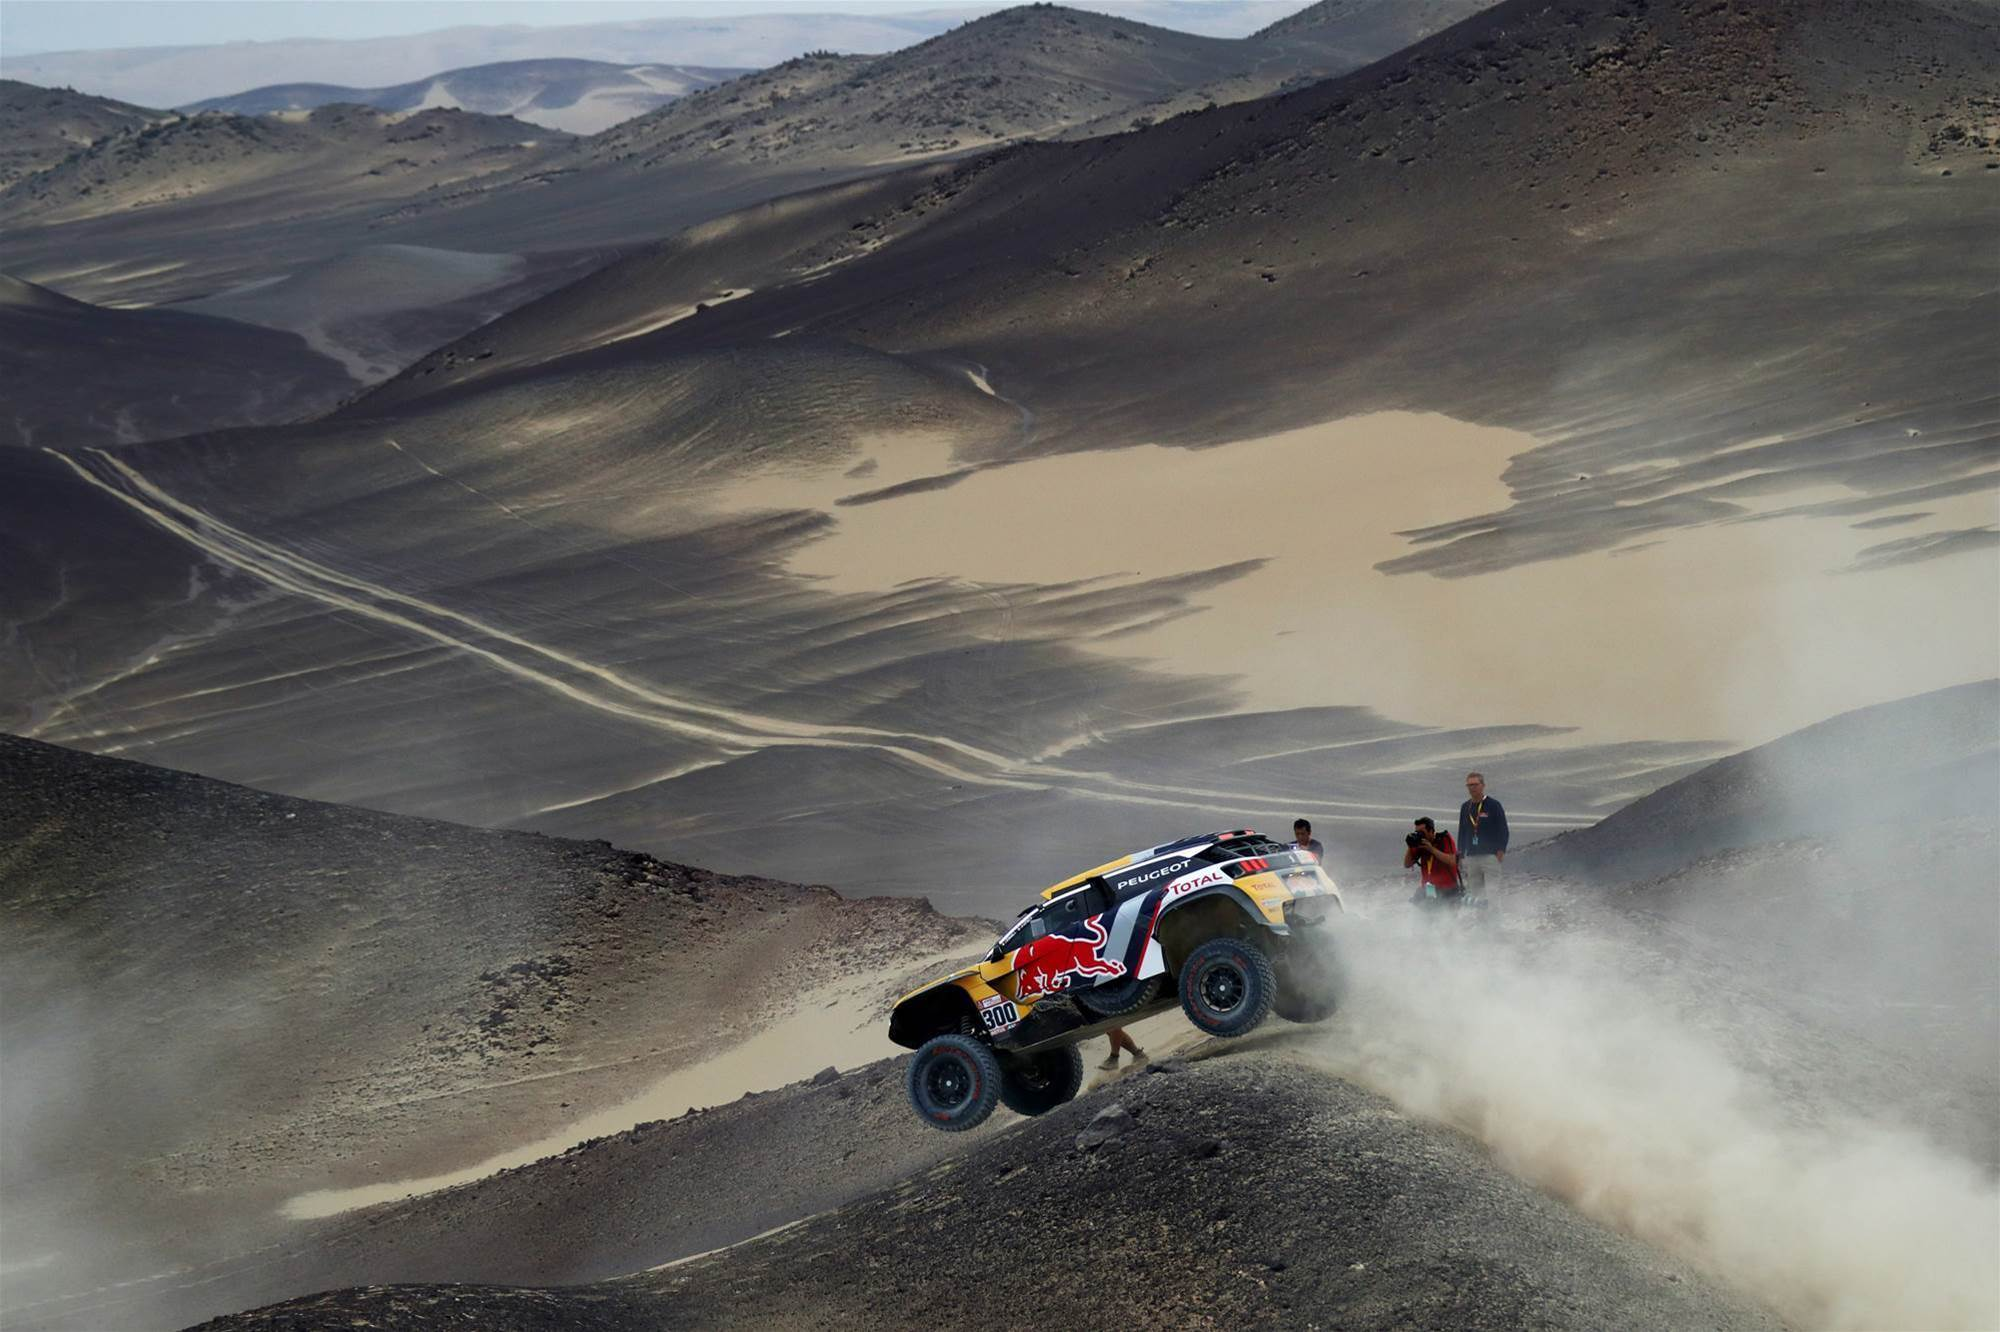 Pic gallery: Dakar Rally